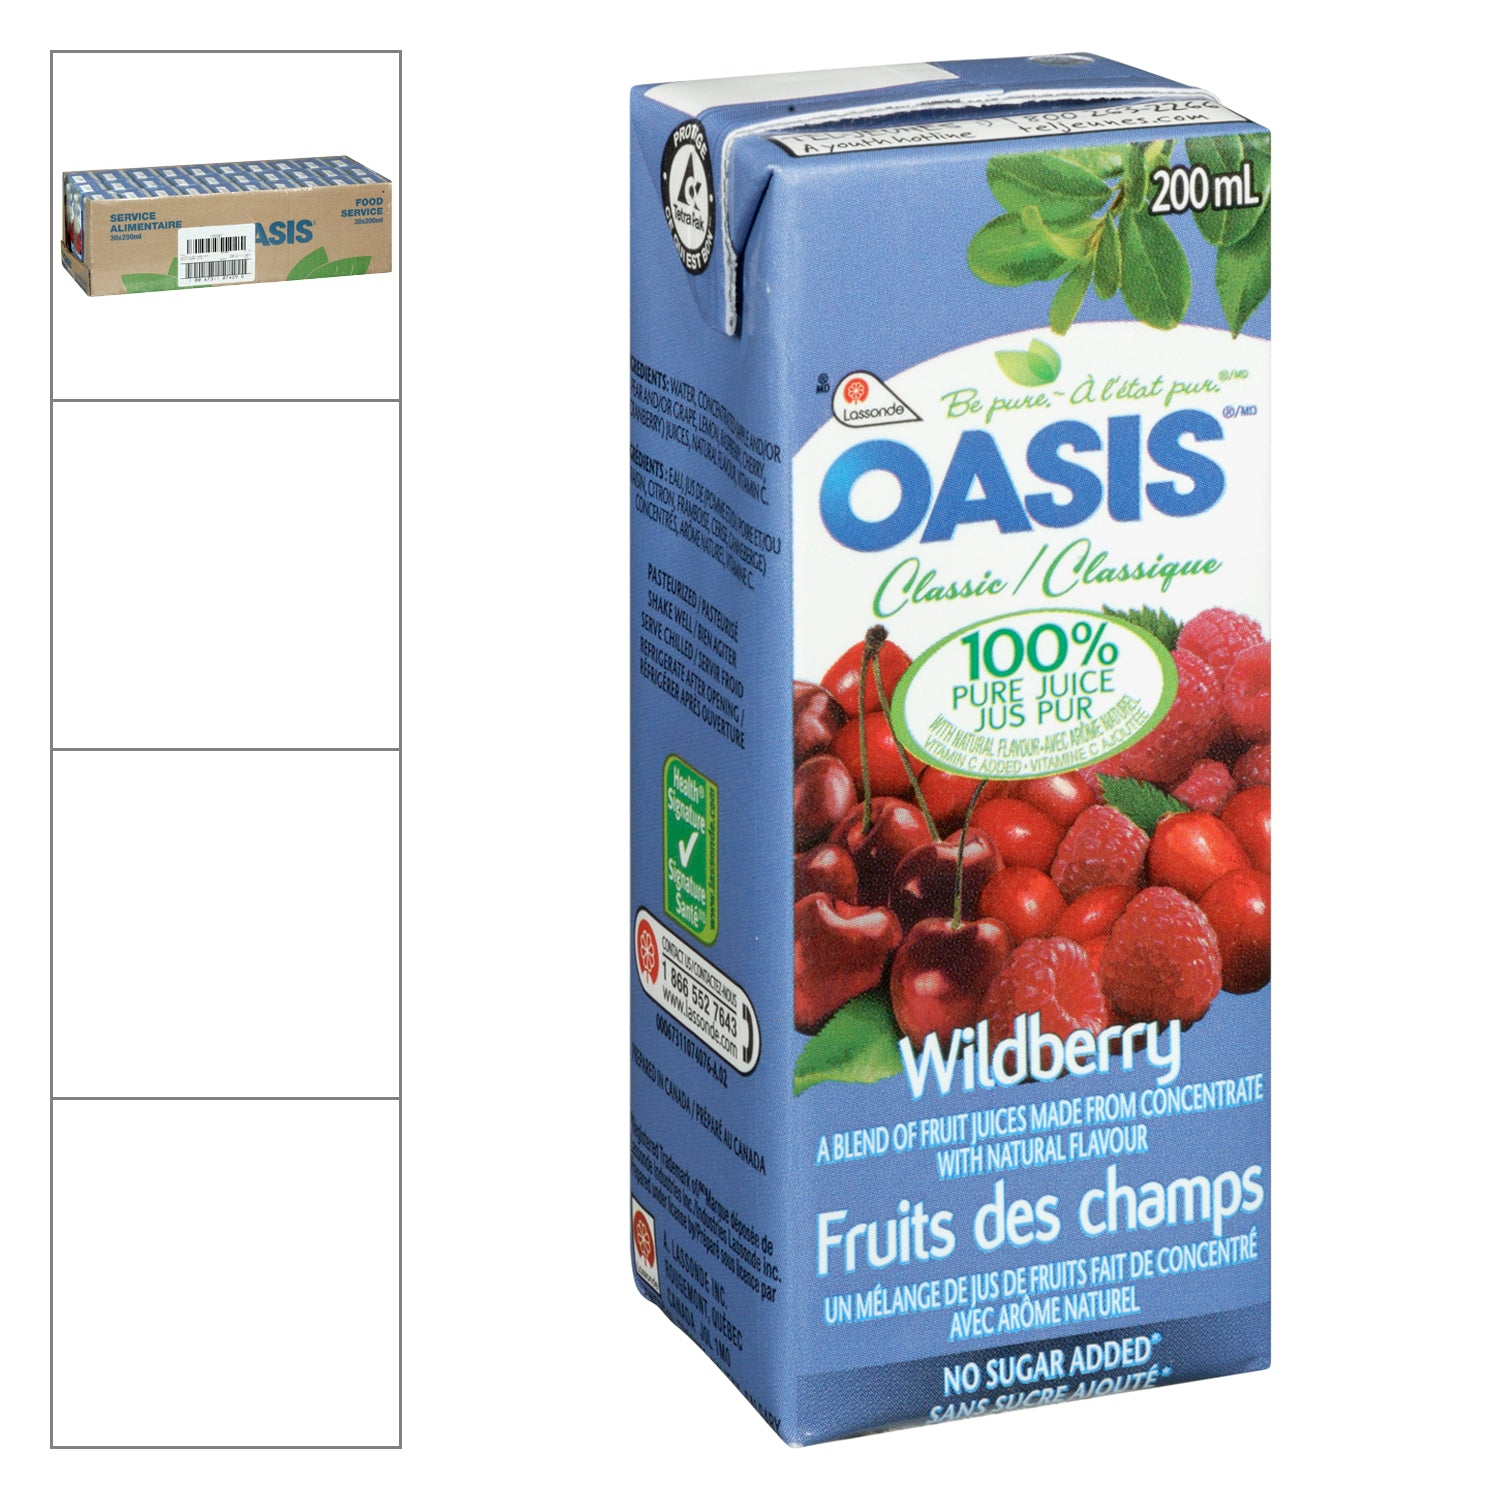 Oasis Berry Punch Tetra Pack 200 ml - 30 Pack [$0.60/each]